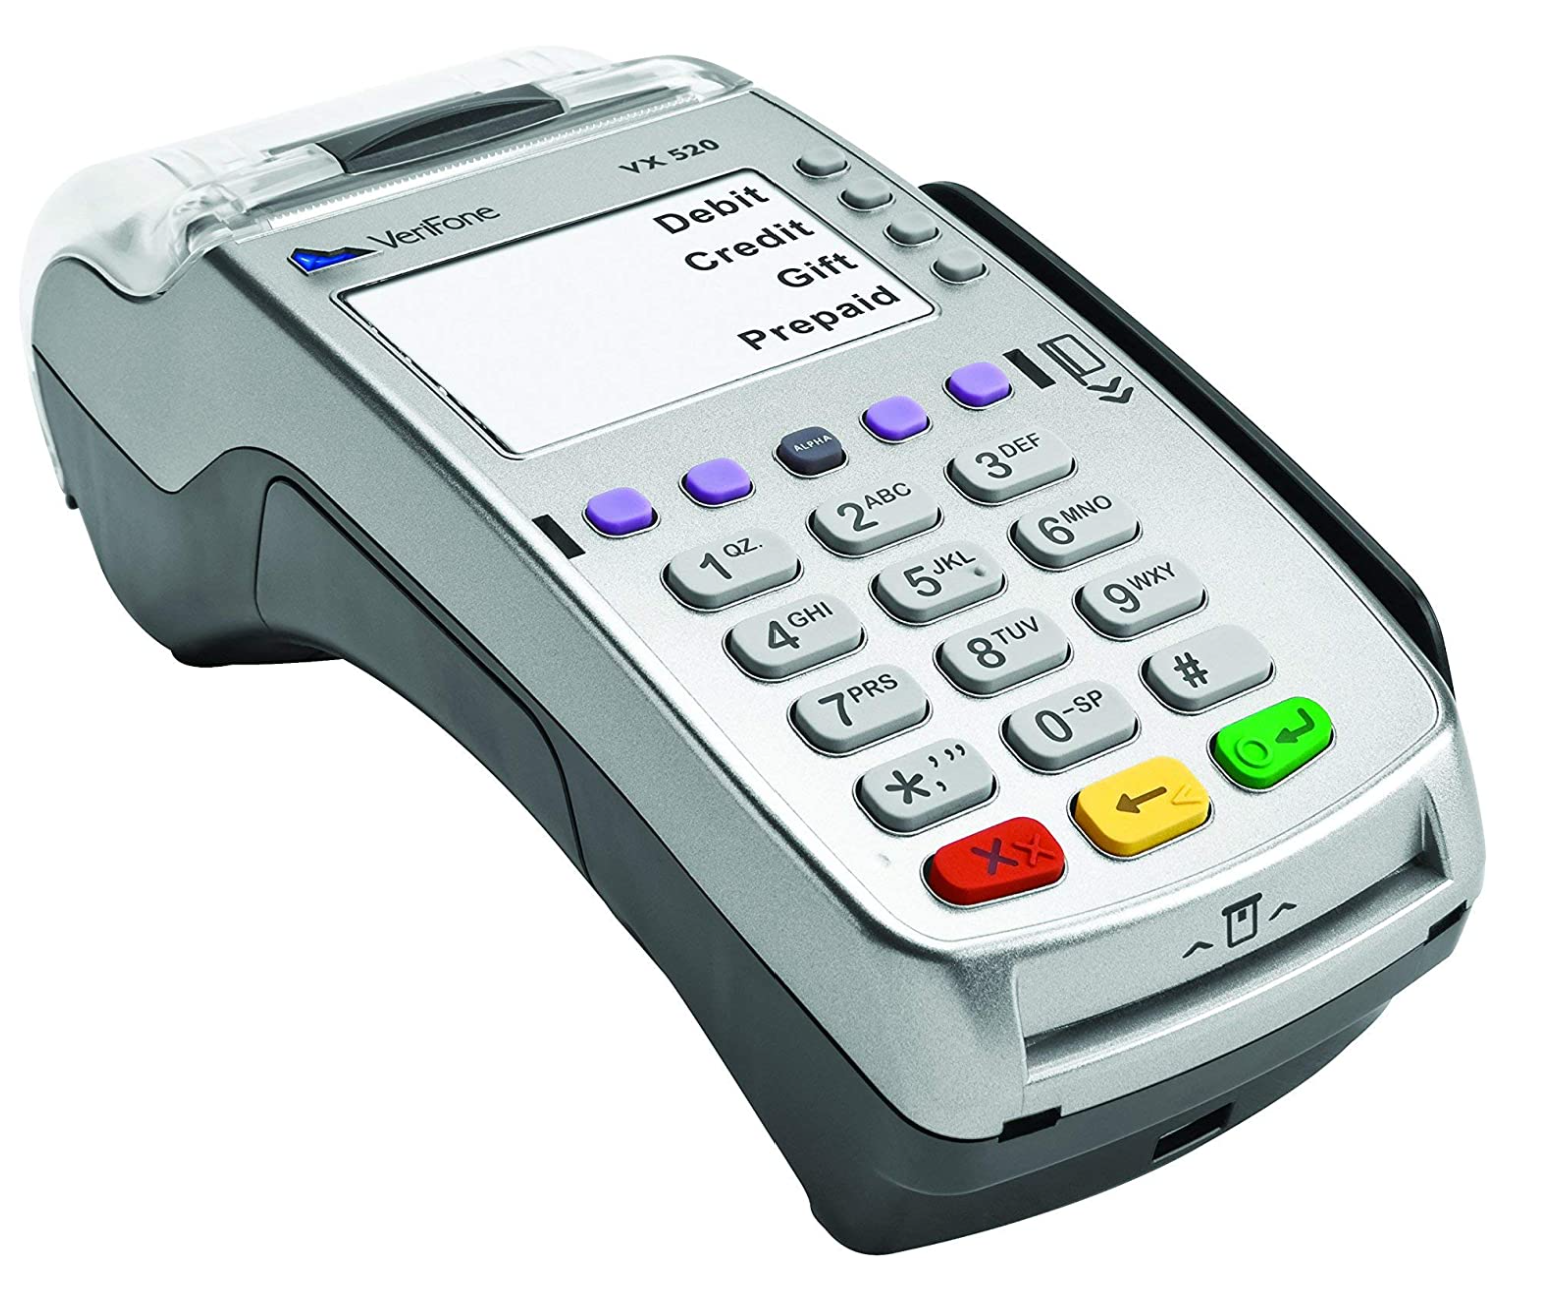 Atavoli.com Verifone Vx520 EMV/Contactless : Verifone Vx520 EMV/Contactless. Restaurant & Bar POS Integrated NFC/CTLS capabilities support alternative payments, as well as apps for loyalty programs and gift cards. EMV chip. EMV enabled. NFC-contactless